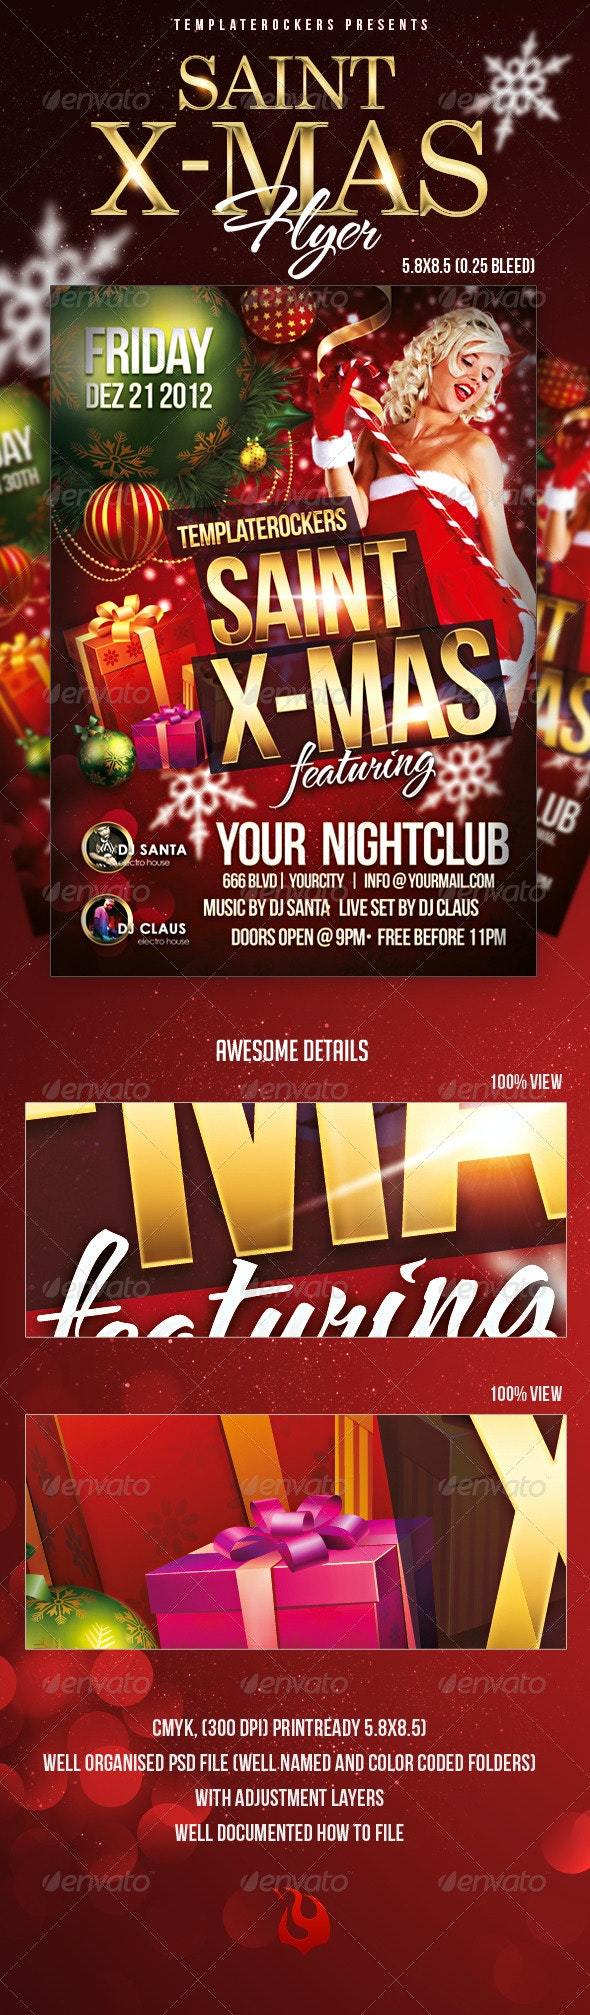 Saint X-Mas Flyer - Clubs & Parties Events